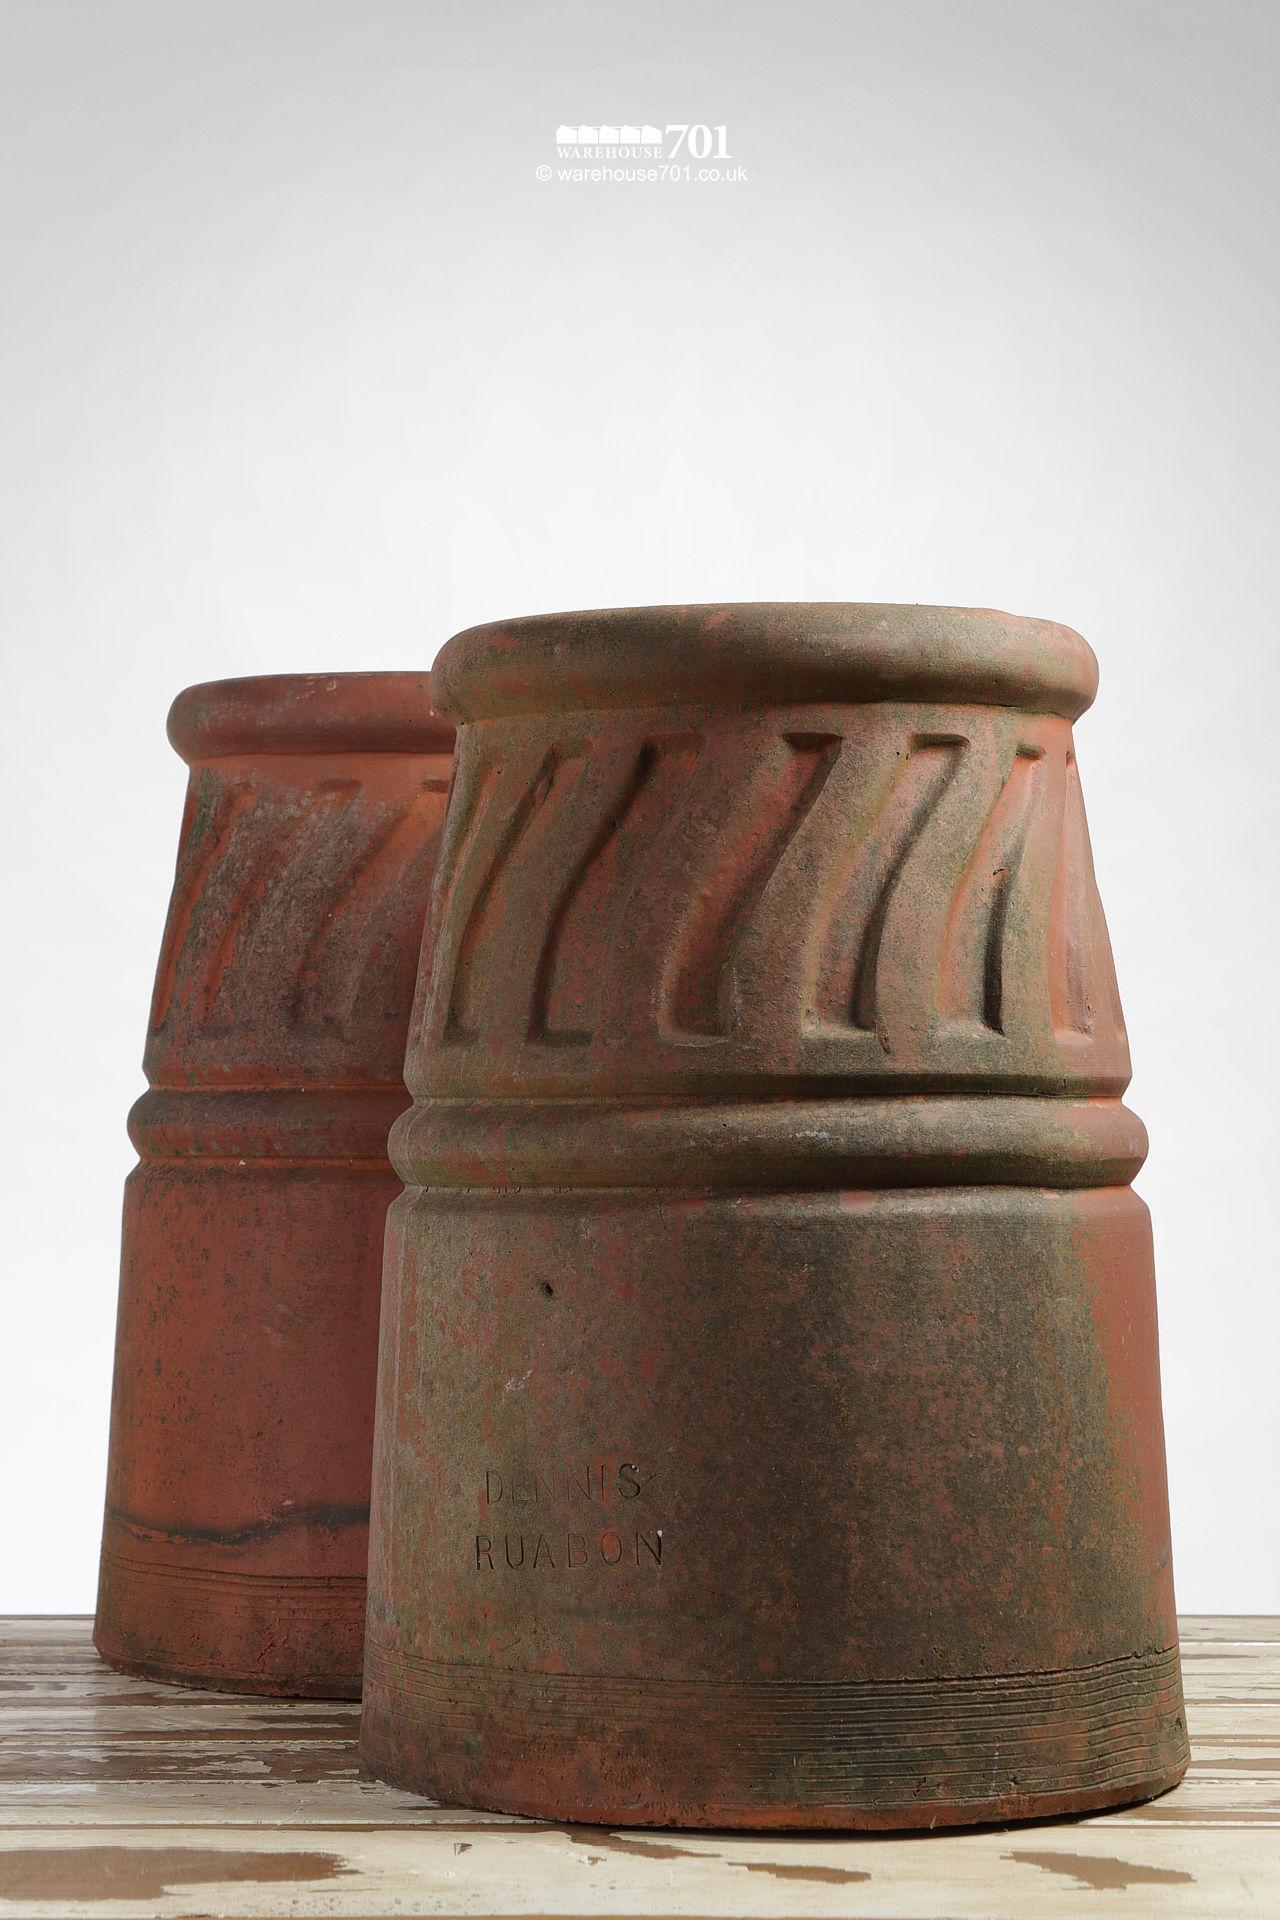 Pair of Reclaimed Red Clay Dennis Ruabon Chimney Pots #1